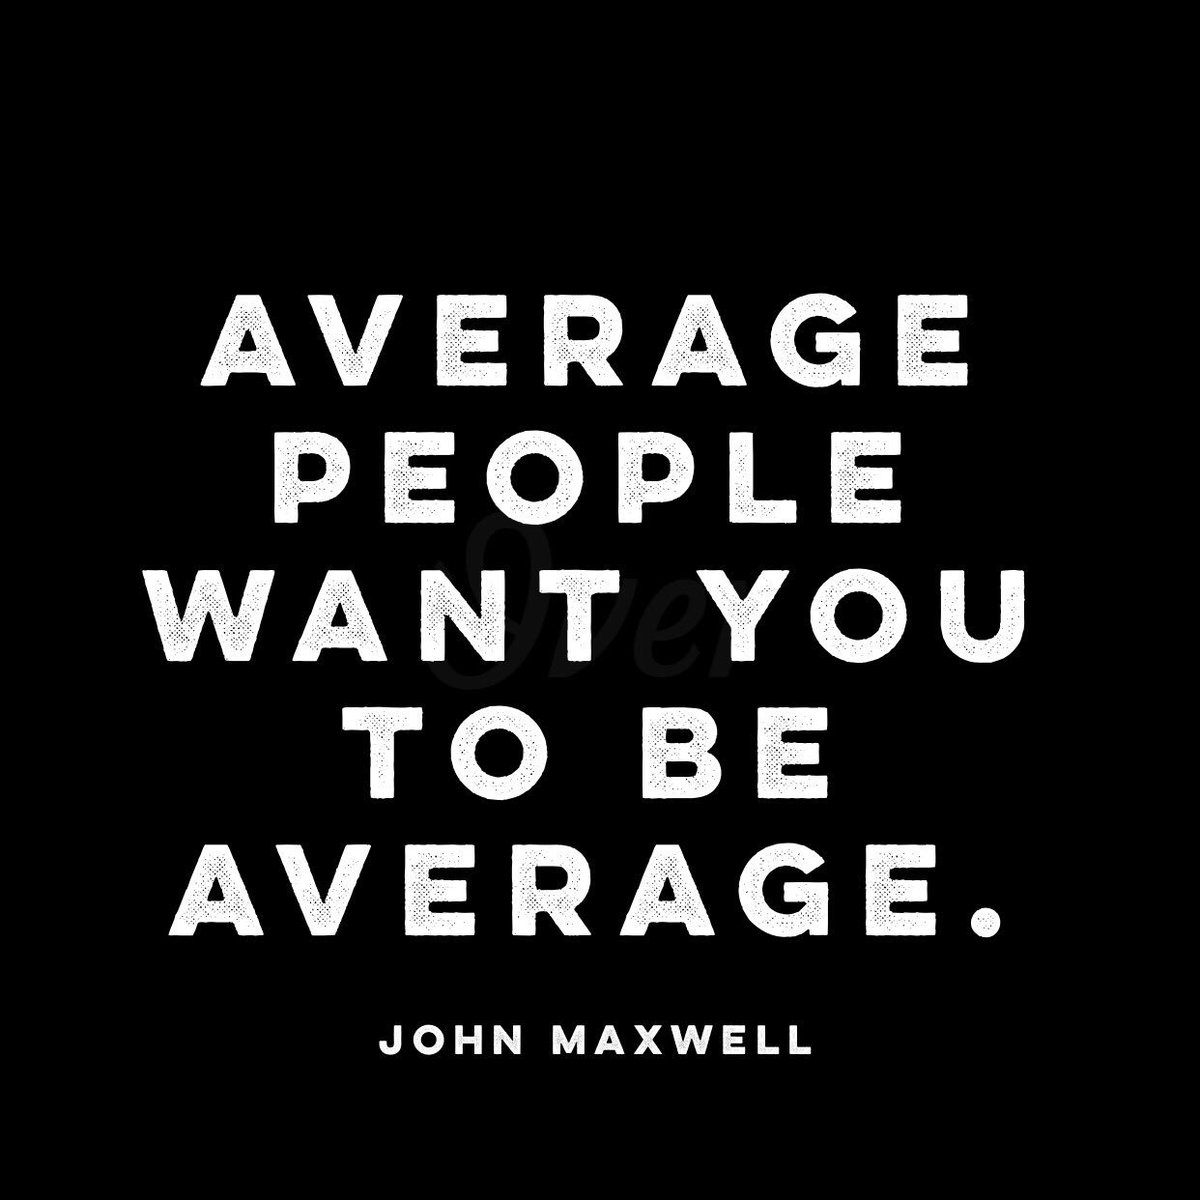 Don't succumb to the pressure of being average. https://t.co/eQH6oREFlm